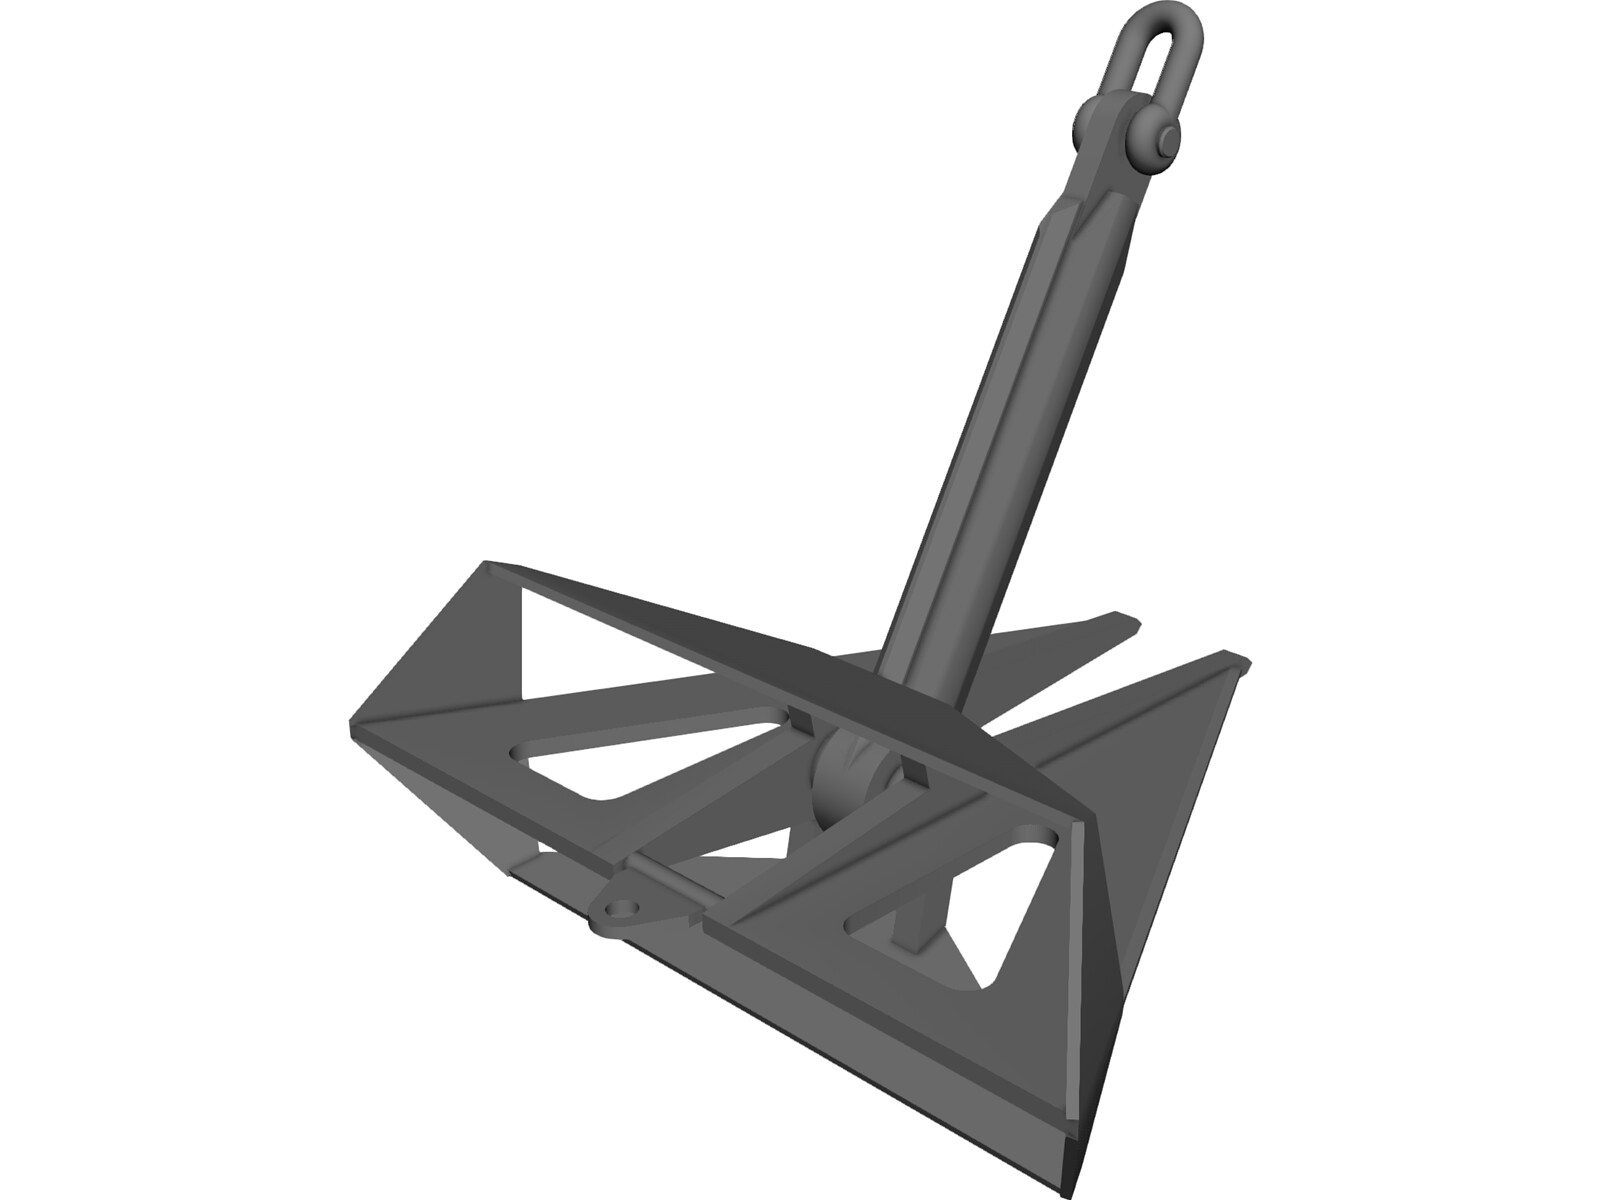 FLIPPER DELTA ANCHOR 7.5TONS [NURBS] 3D Model